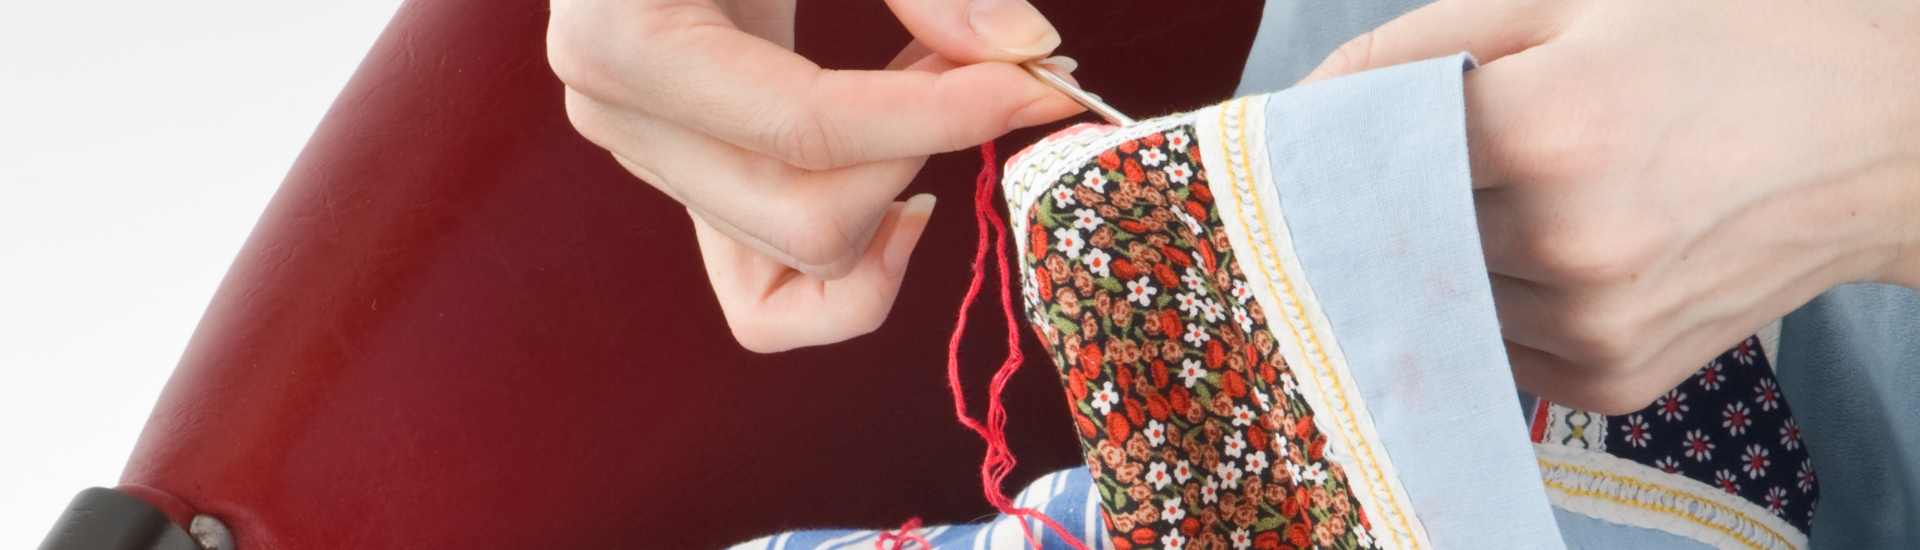 Close-up of Woman Stitching Quilting